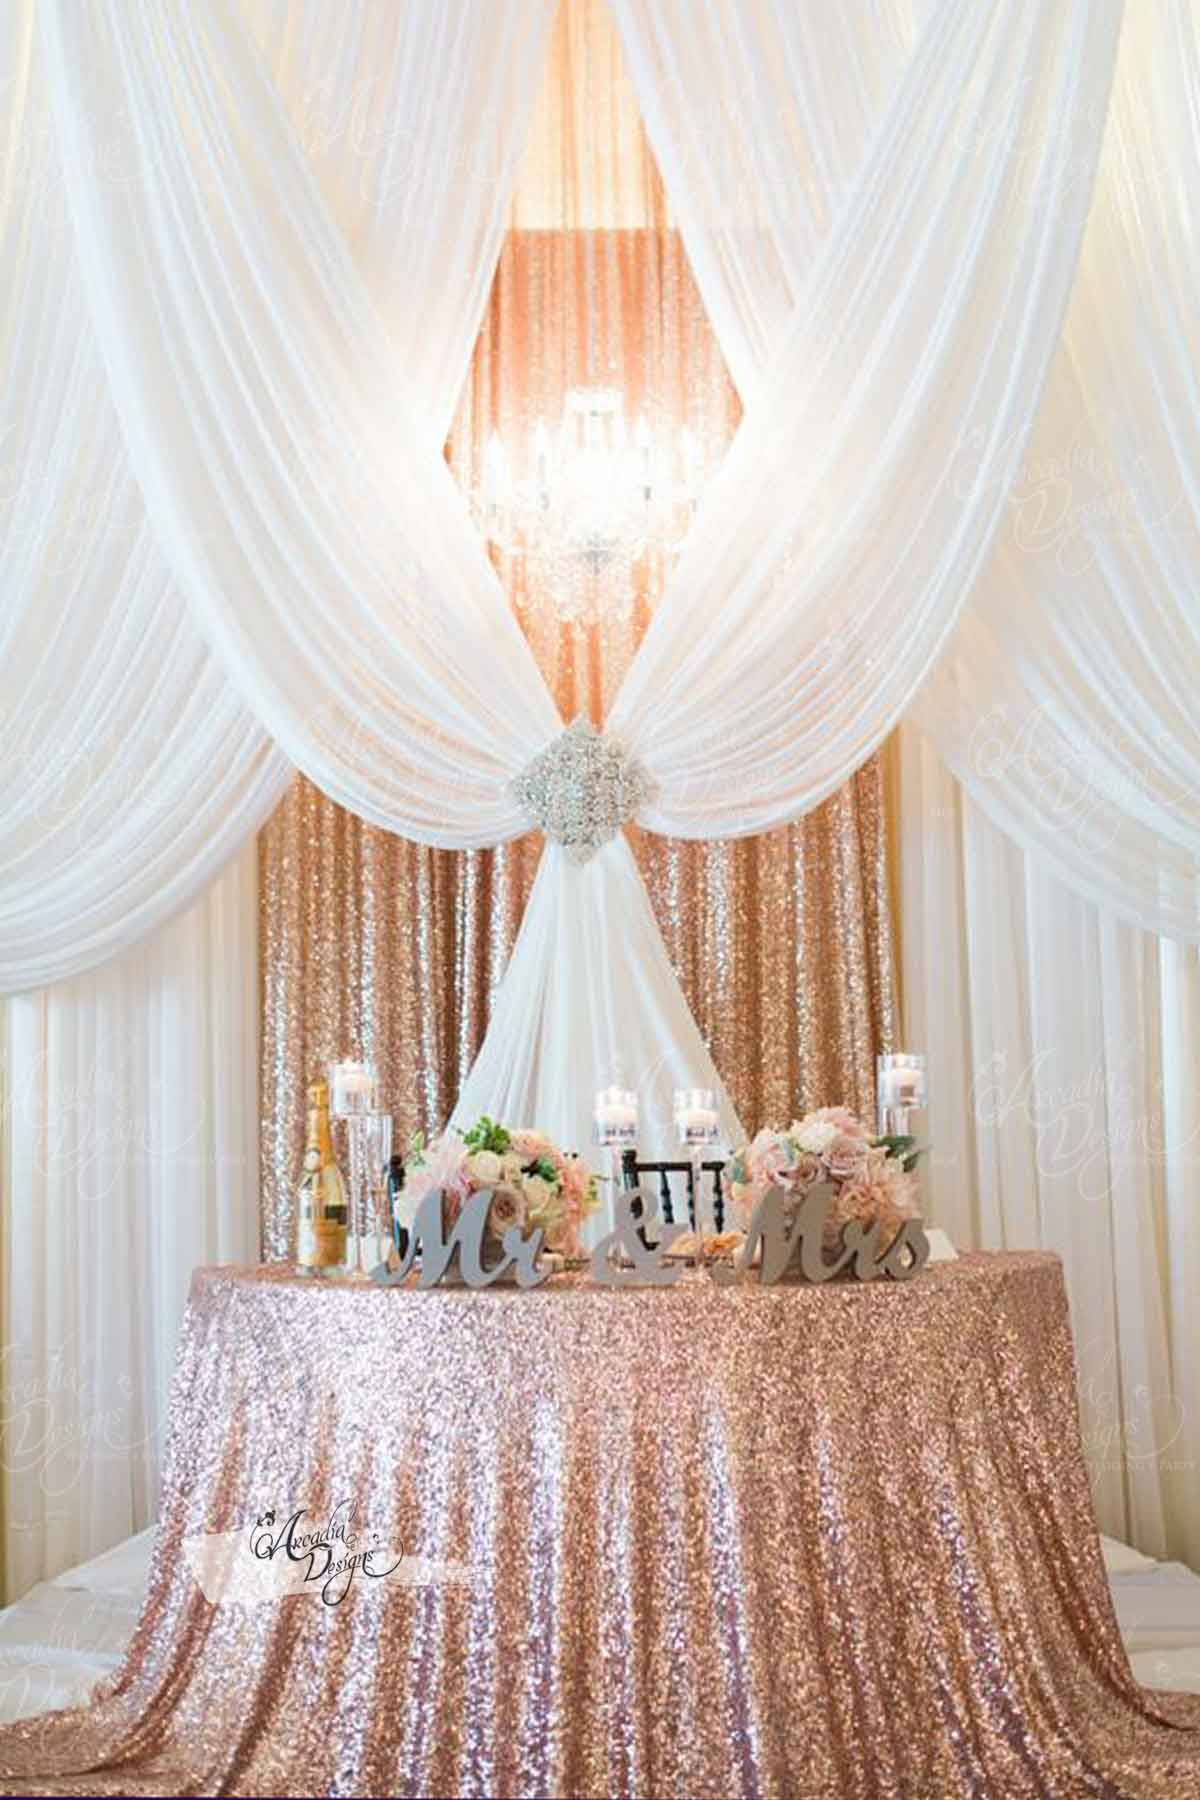 Arcadia Designs Pink and Gold Wedding Drapes 4 W  x  6 L  ft